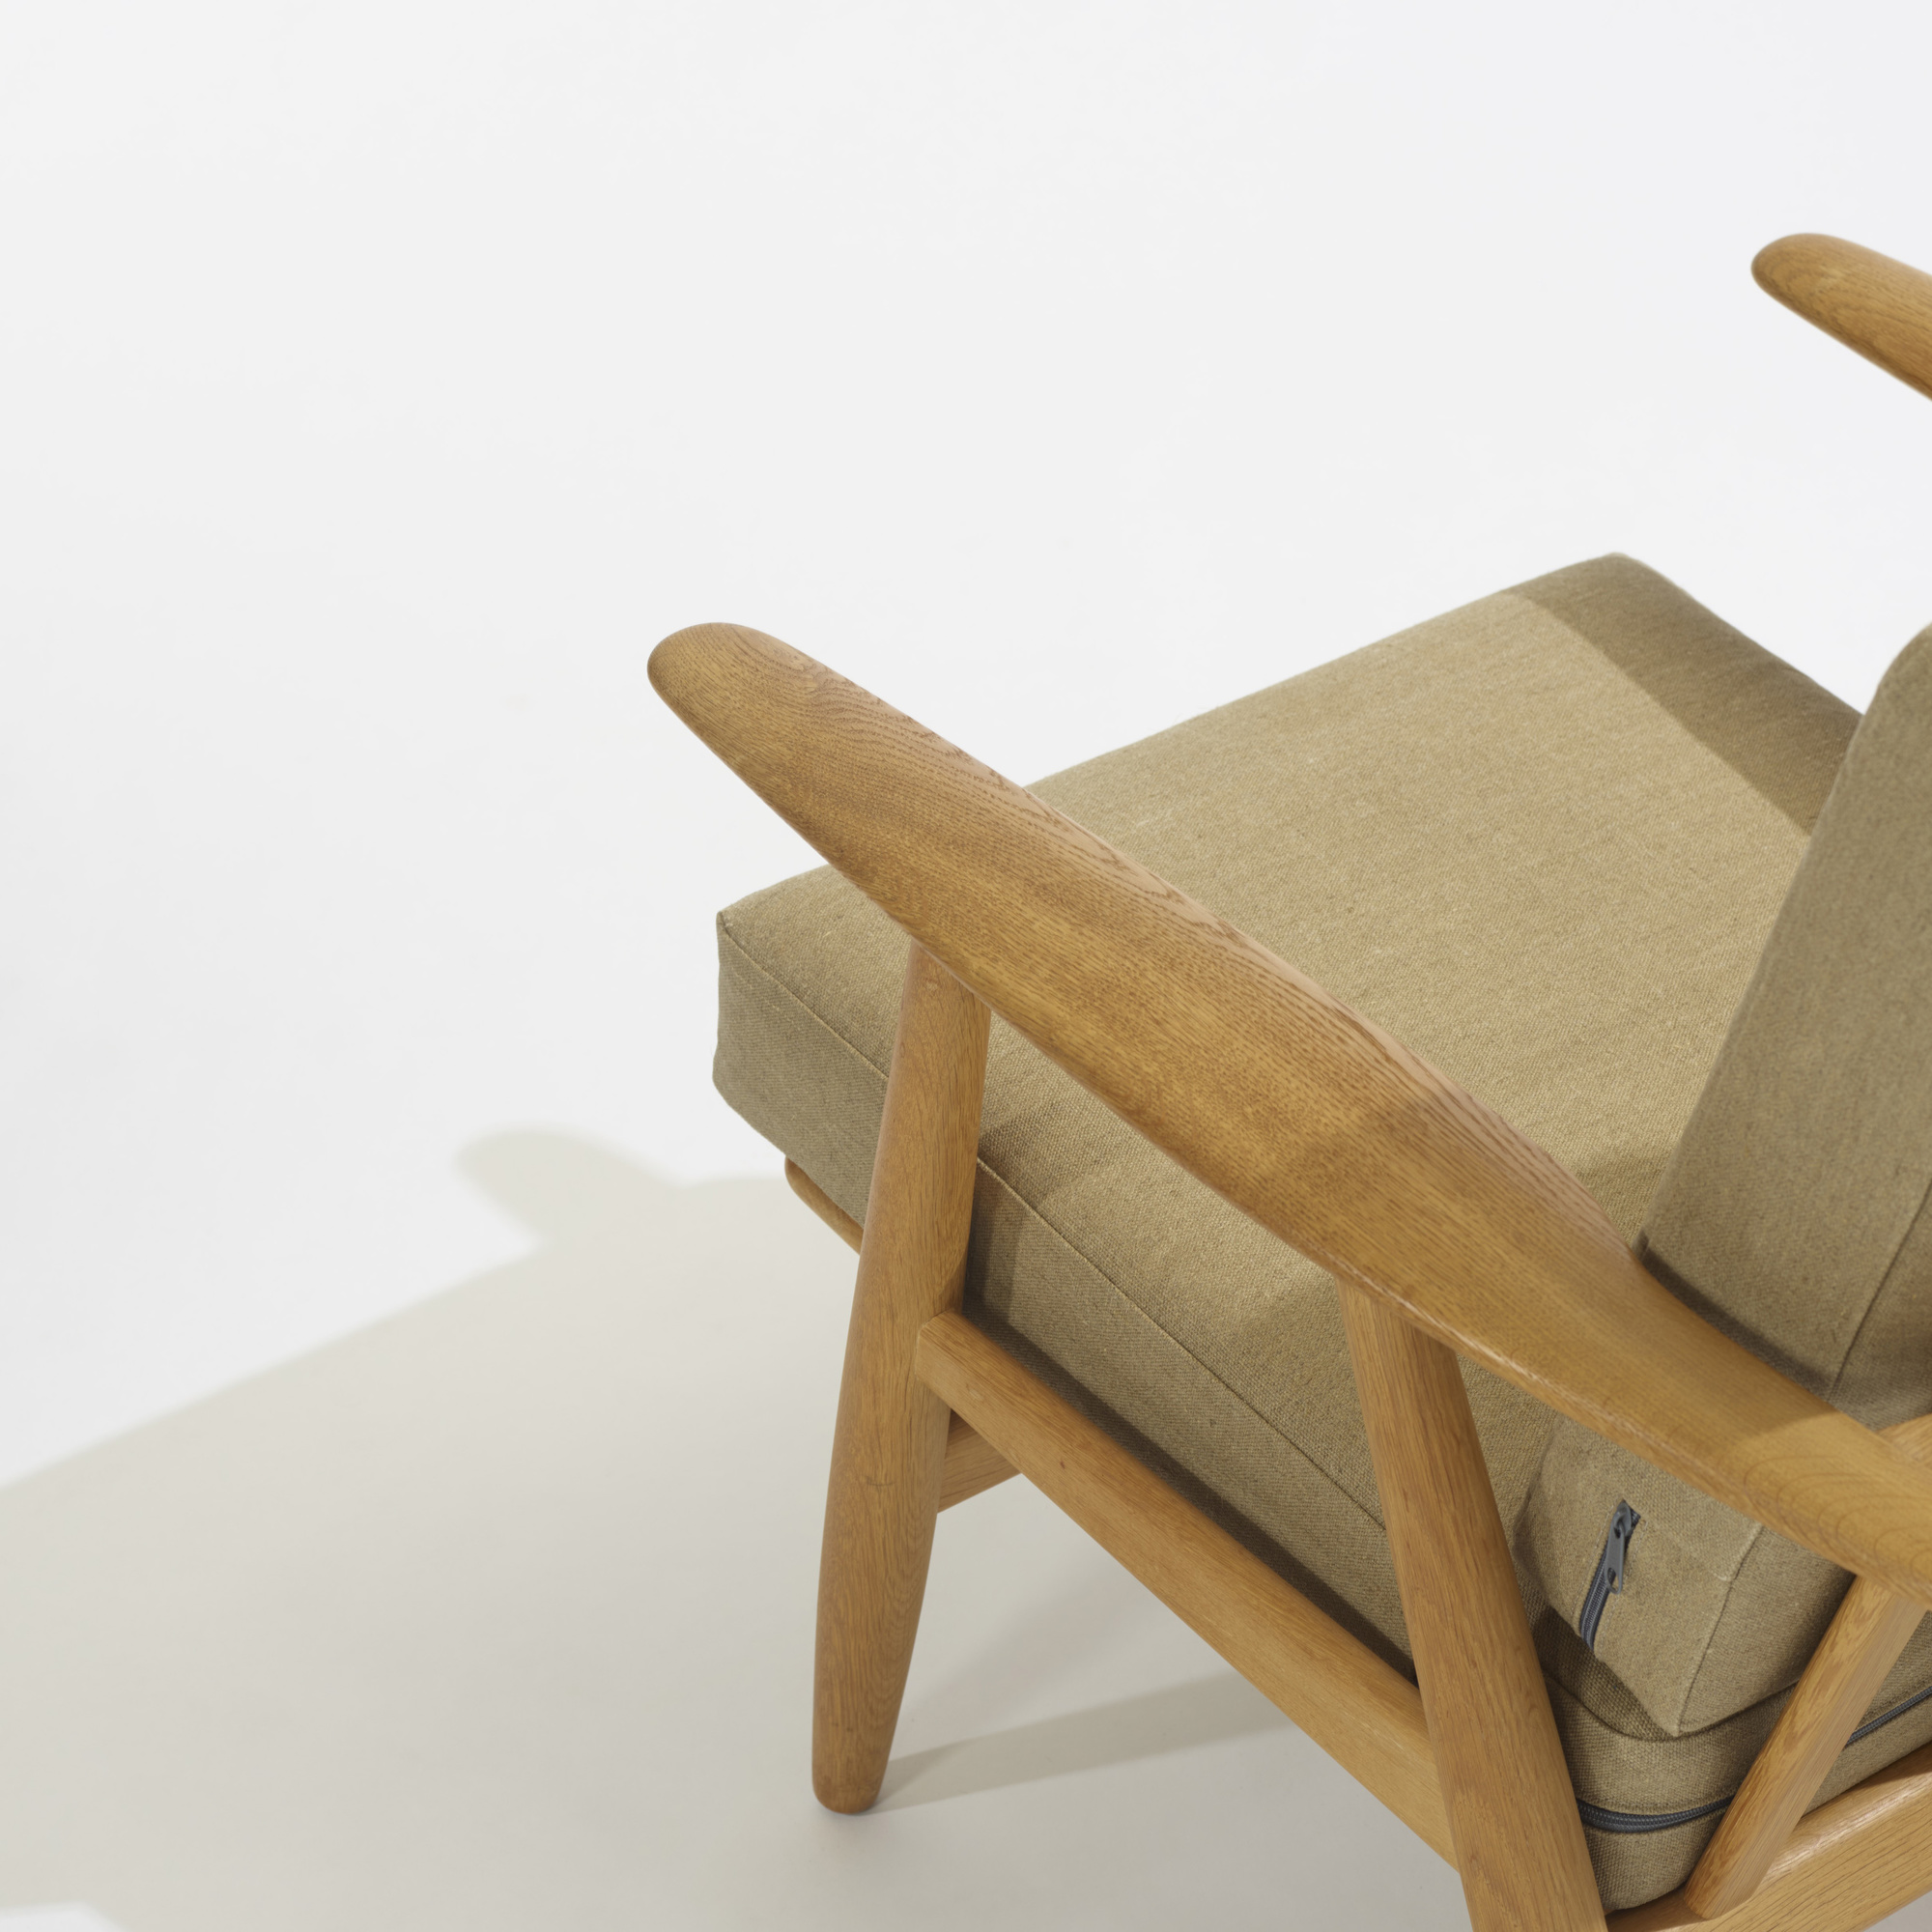 242: Hans J. Wegner / lounge chairs model GE240, pair (3 of 4)